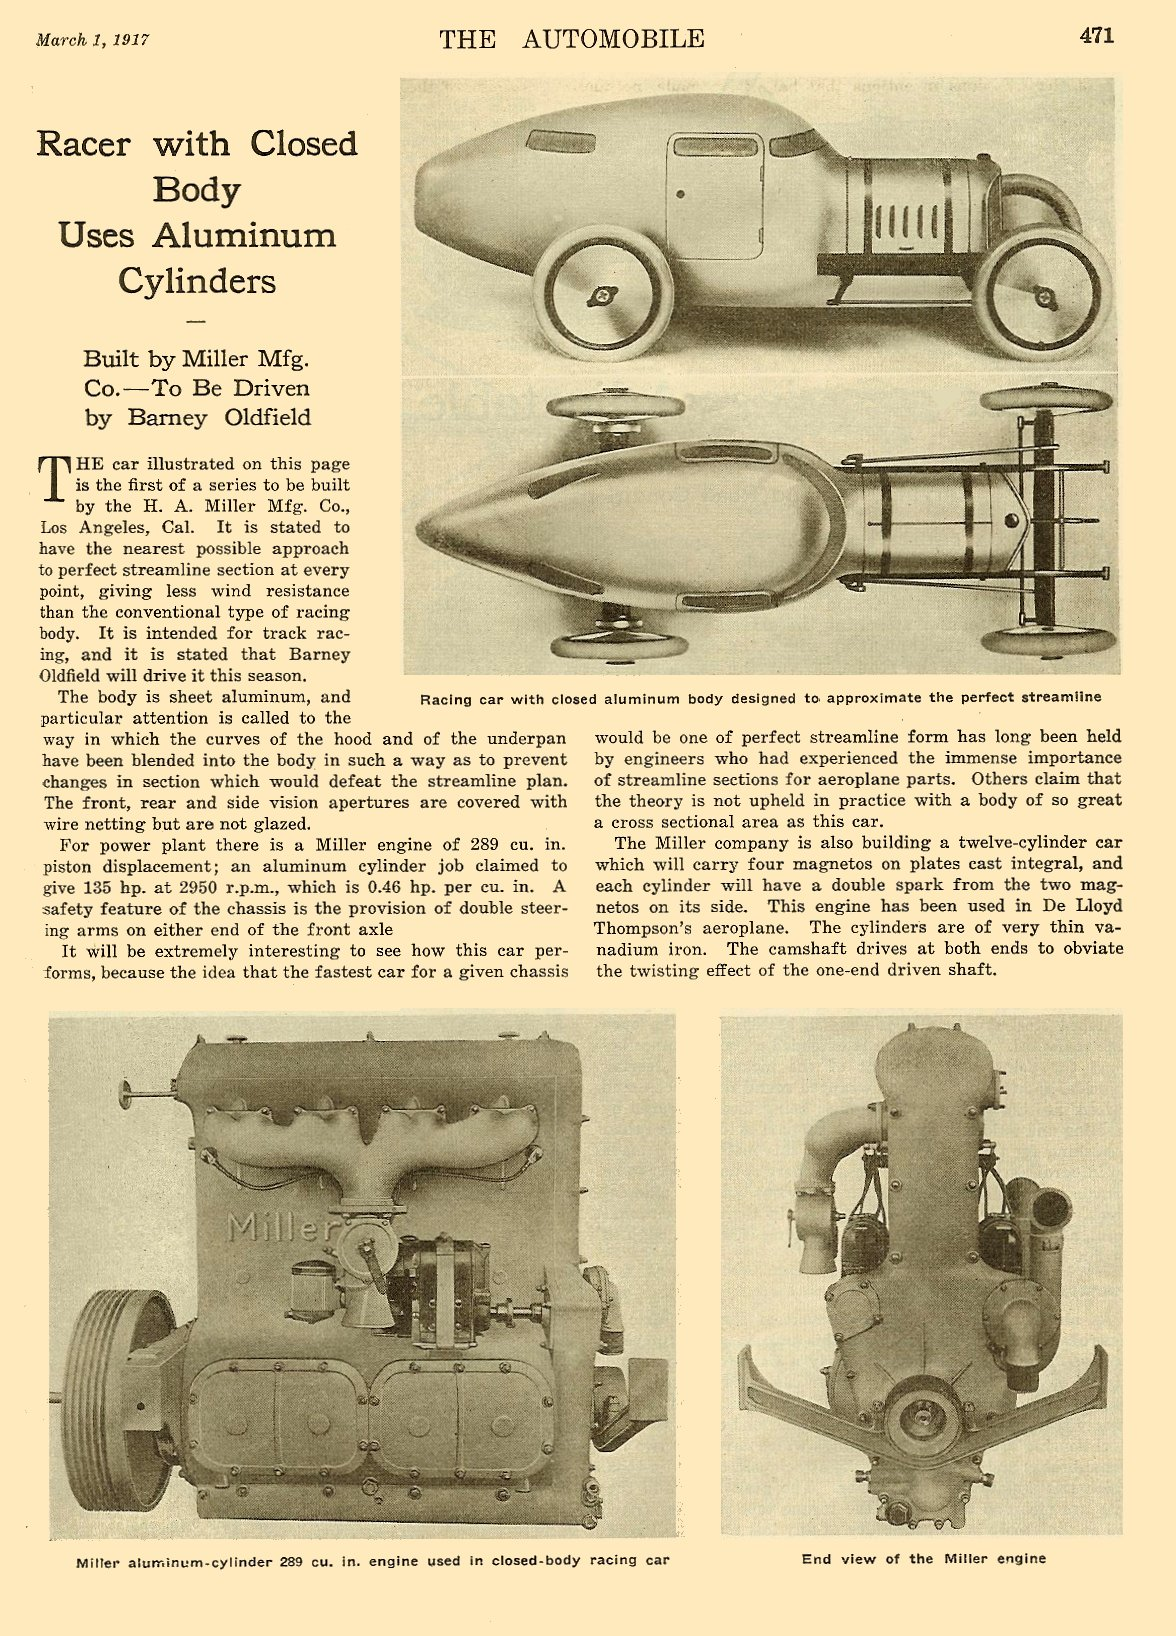 1917 3 1 Racer with Closed Body Uses Aluminum Cylinders THE AUTOMOBILE Vol. 36 No. 9 March 1, 1917 9″x12″ page 471